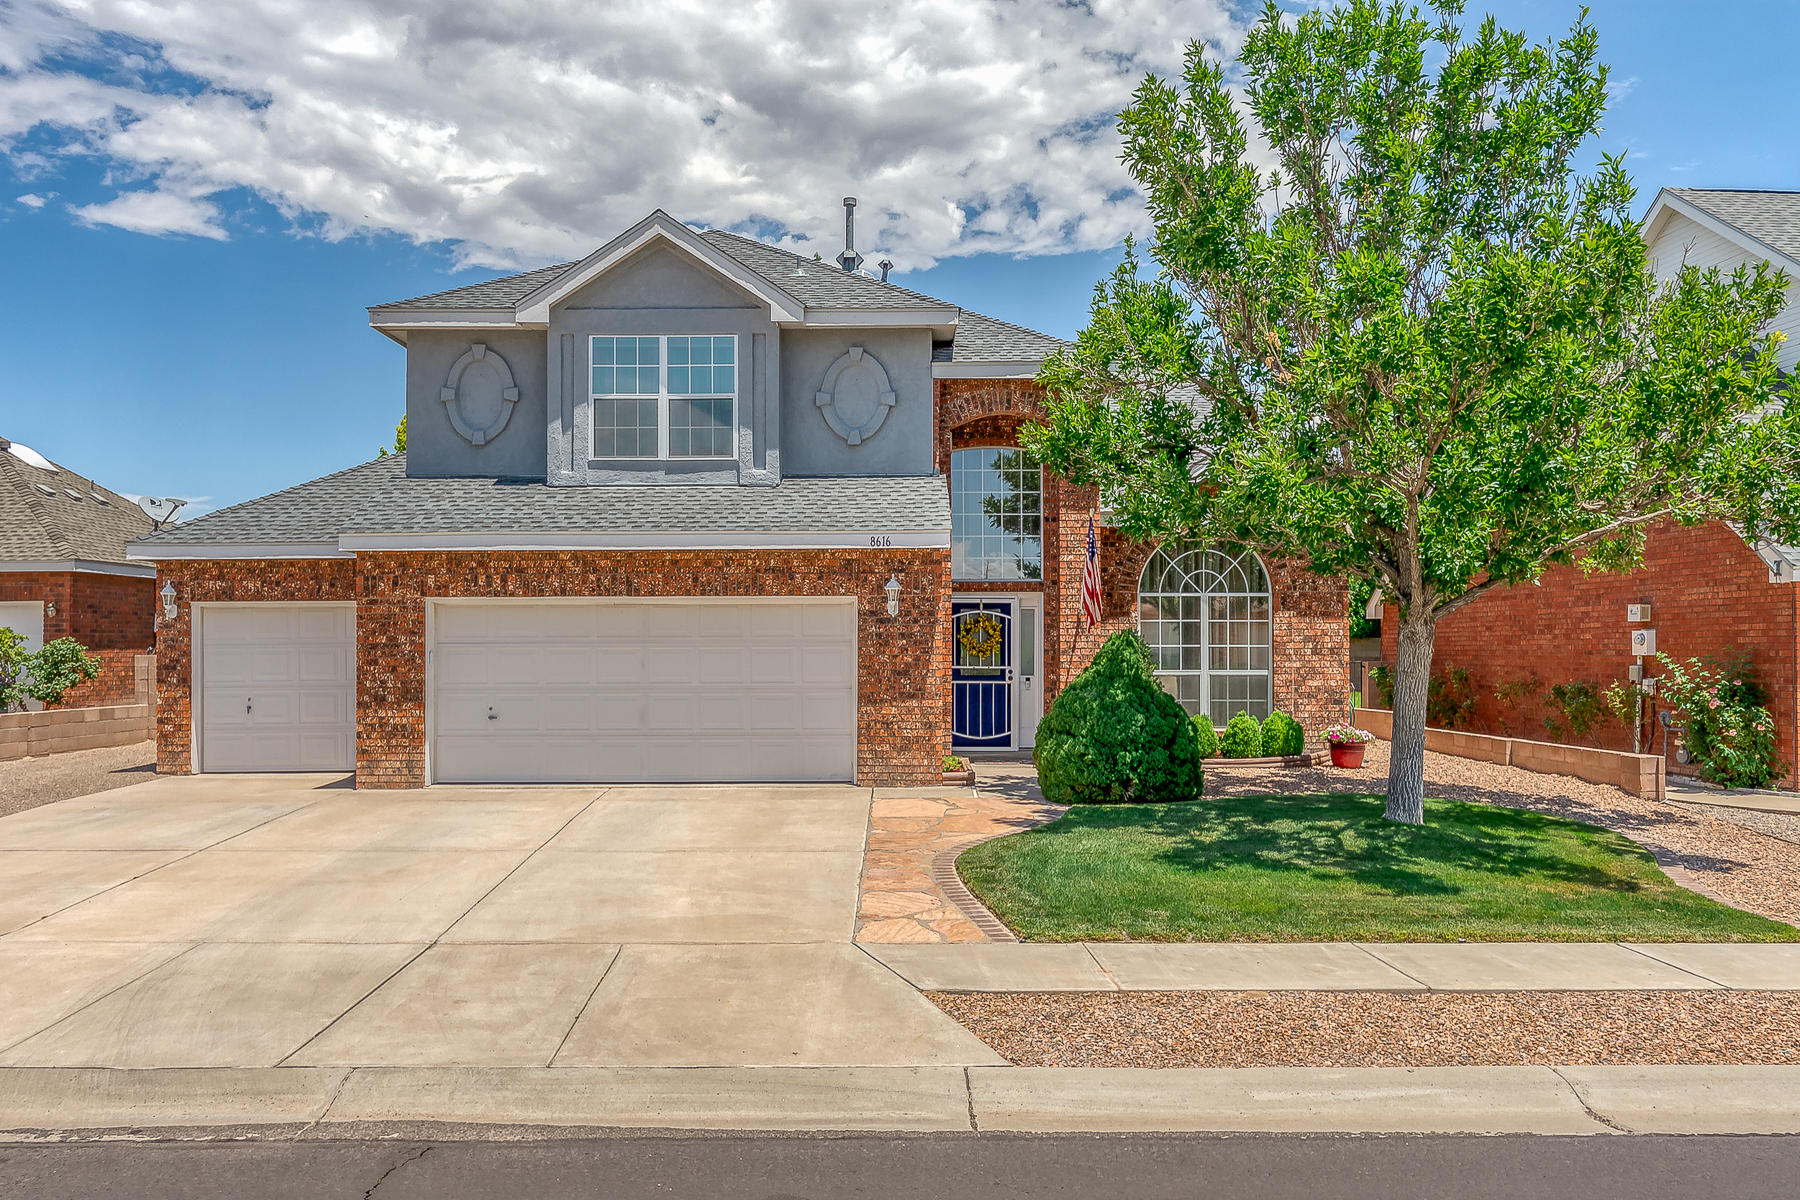 8616 Timberidge Place, Albuquerque NM 87114